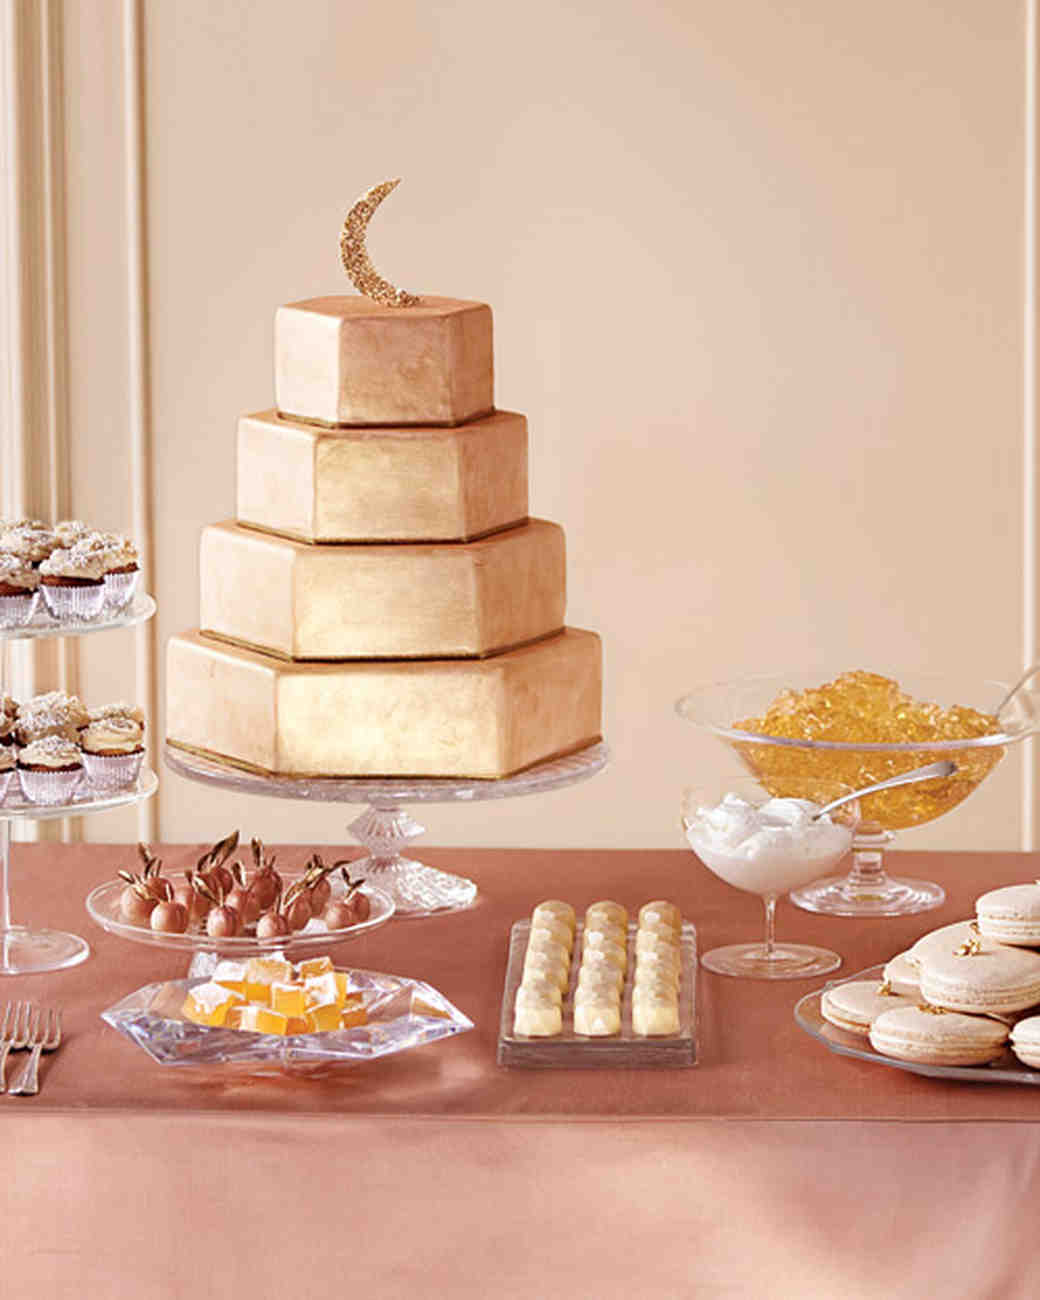 using wedding cake as dessert dazzling and delicious how to add sparkle to your cake 21516